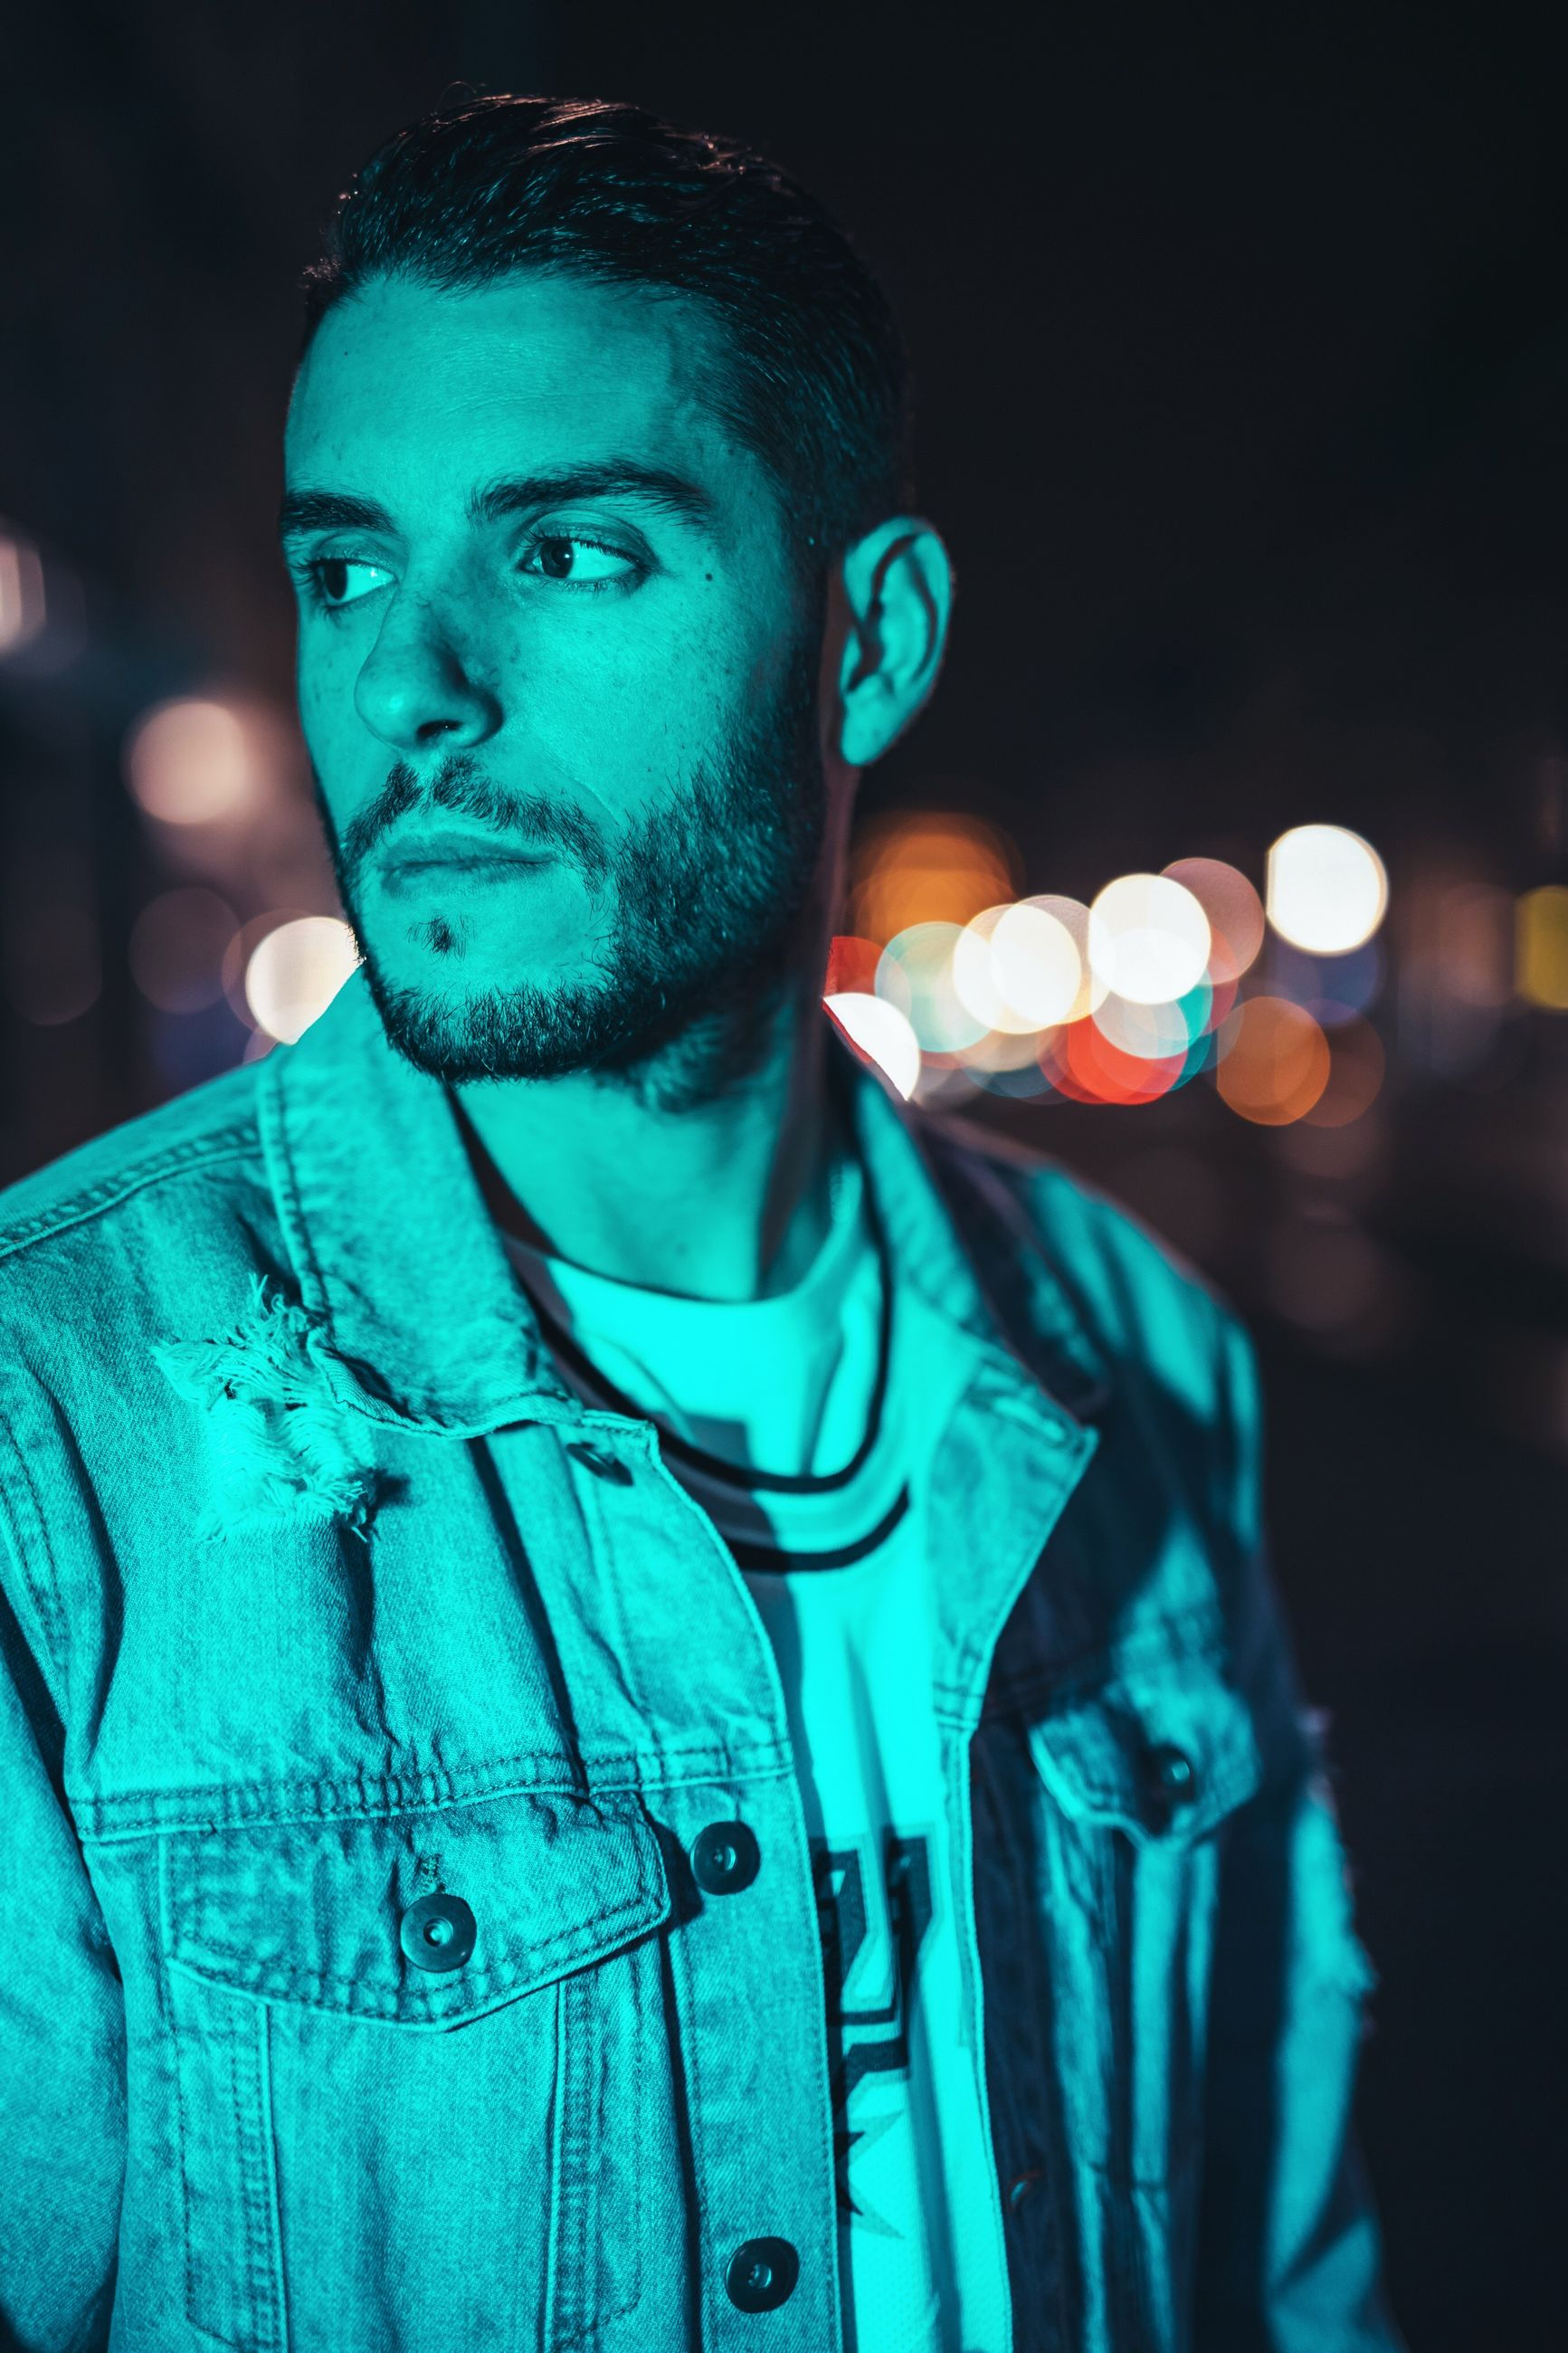 illuminated, night, real people, one person, green color, front view, outdoors, lifestyles, young adult, portrait, close-up, people